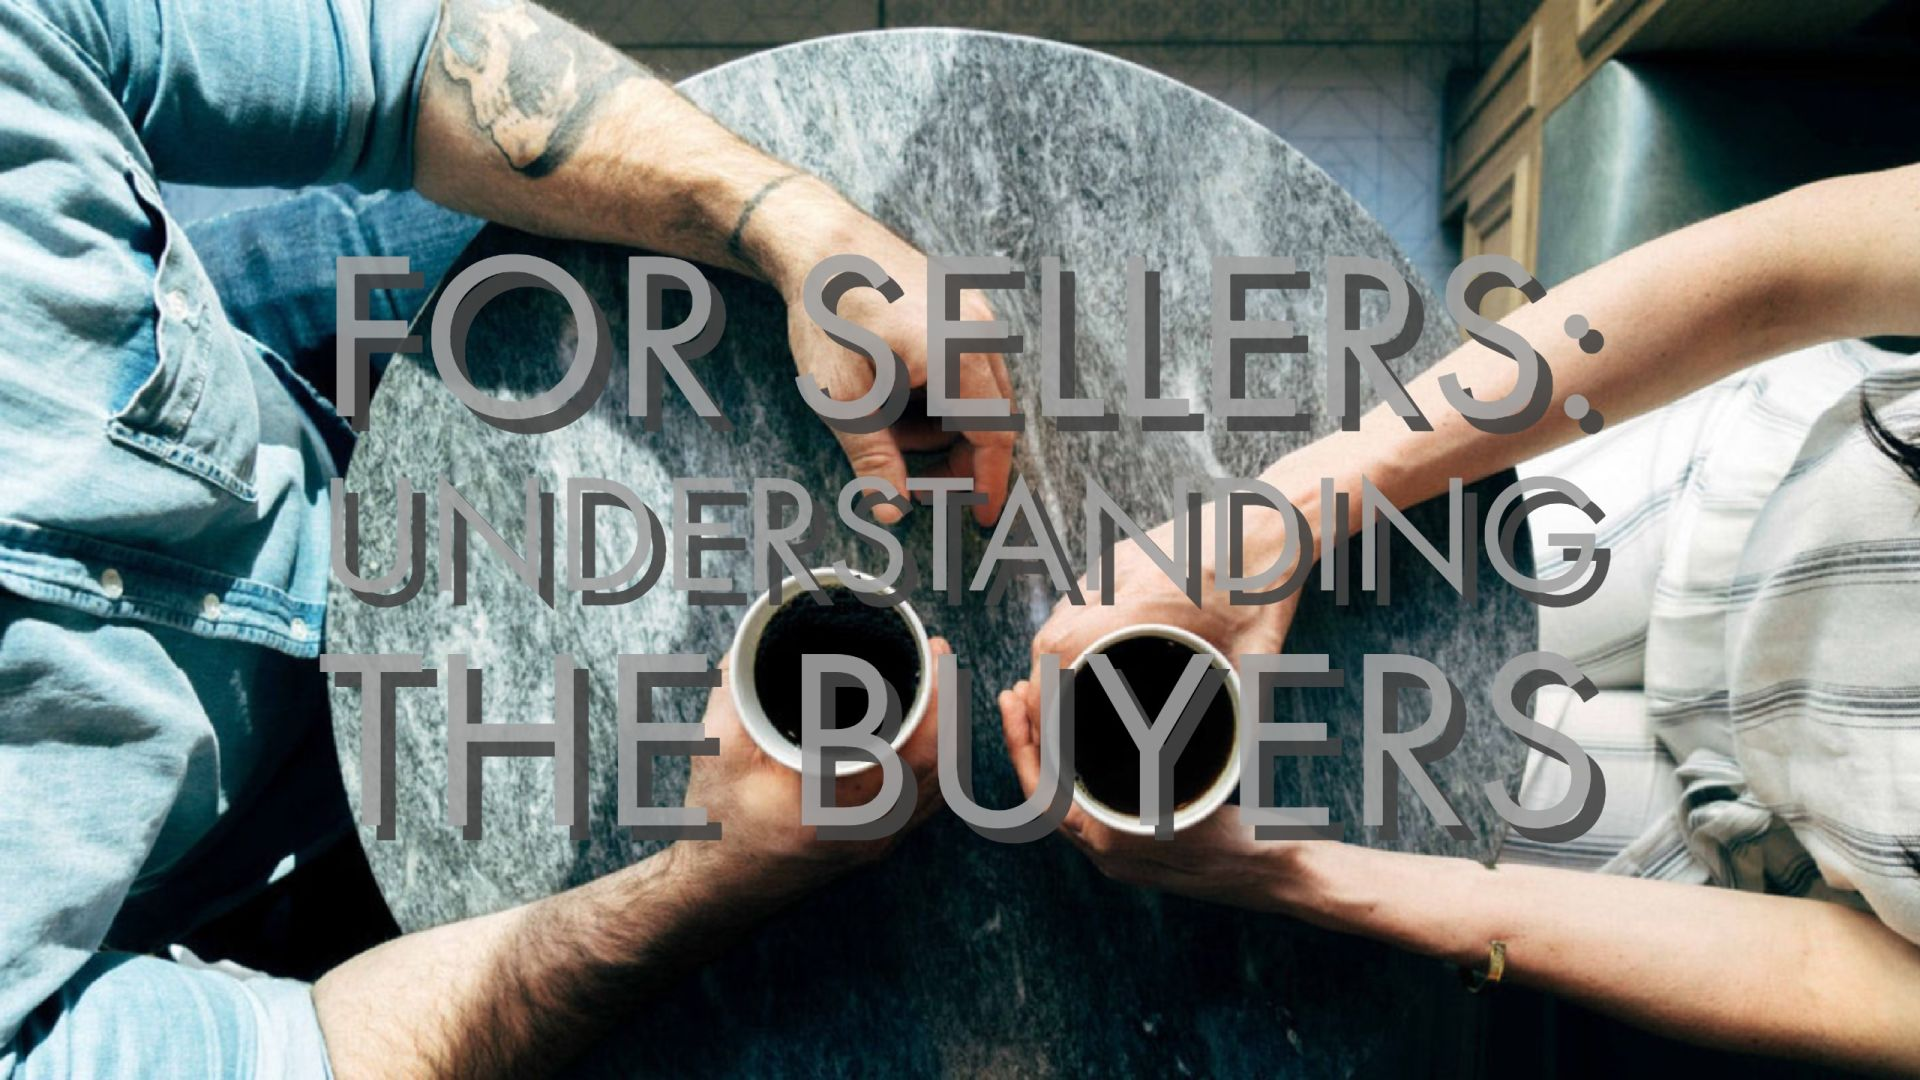 For Sellers: Understanding the Buyers